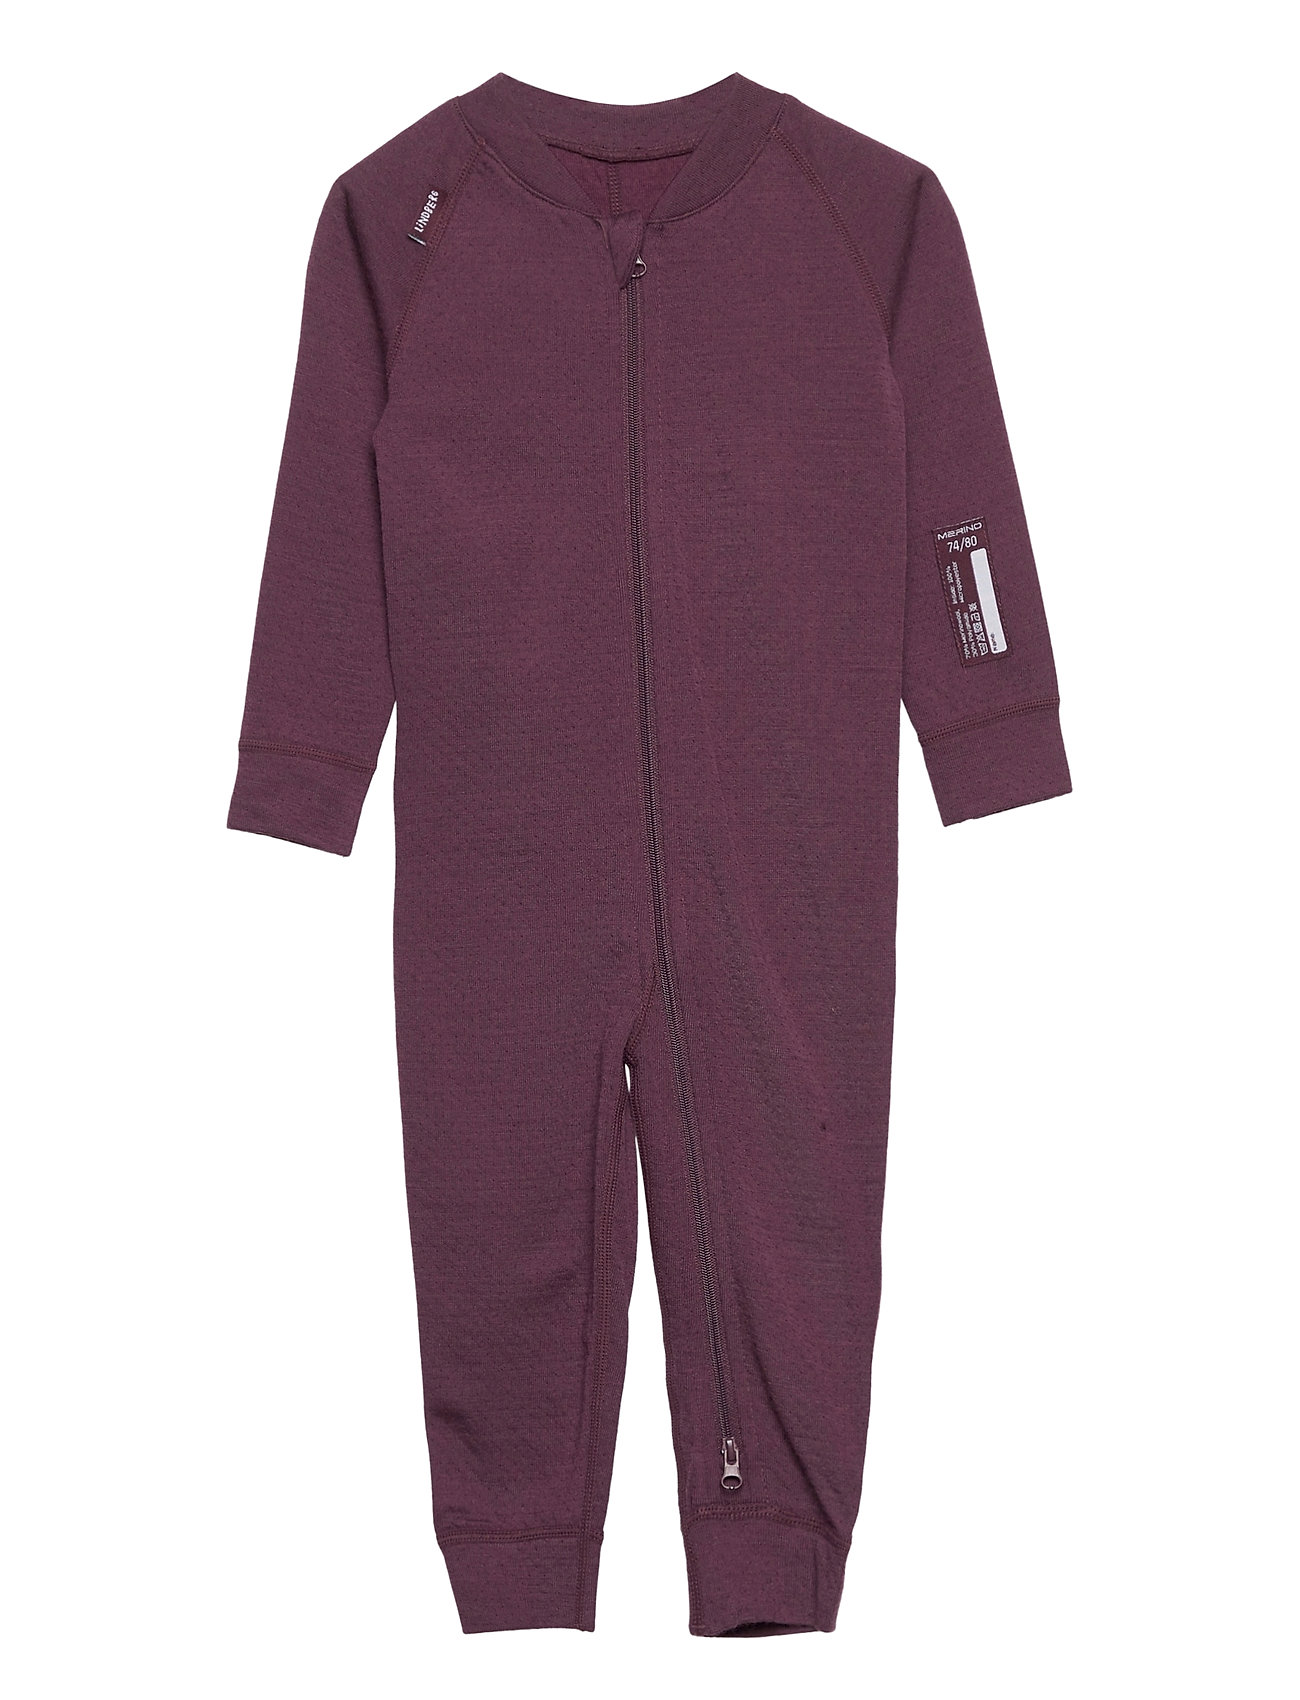 Image of Merino Overall Outerwear Wool Outerwear Lilla Lindberg Sweden (3452761907)